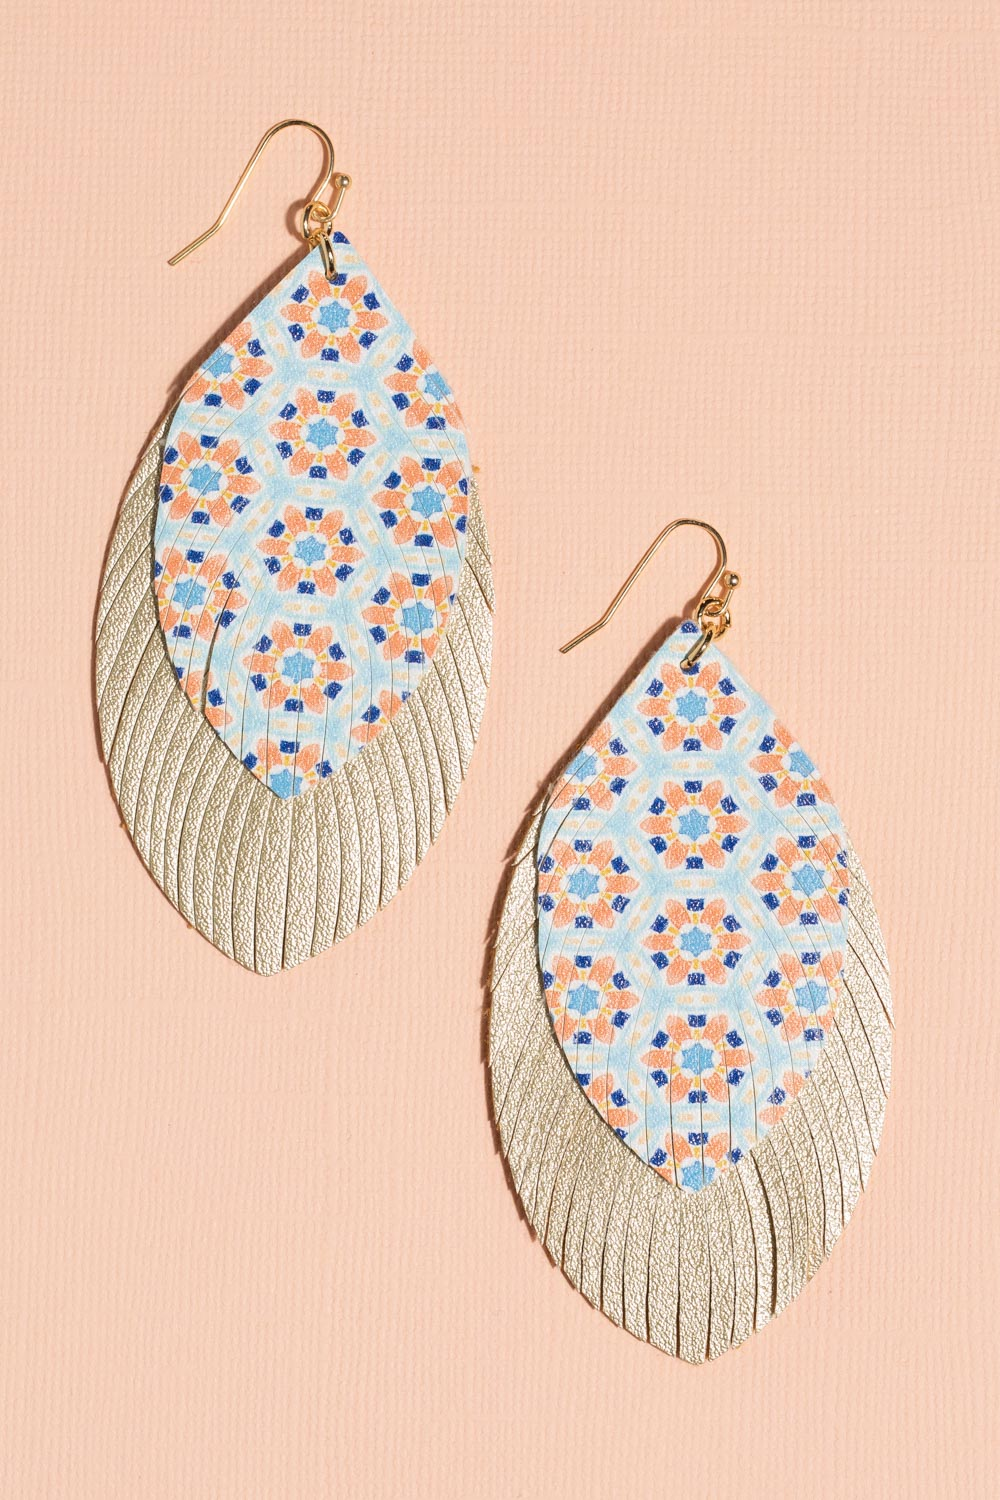 Type 1 Summer Festival Earrings